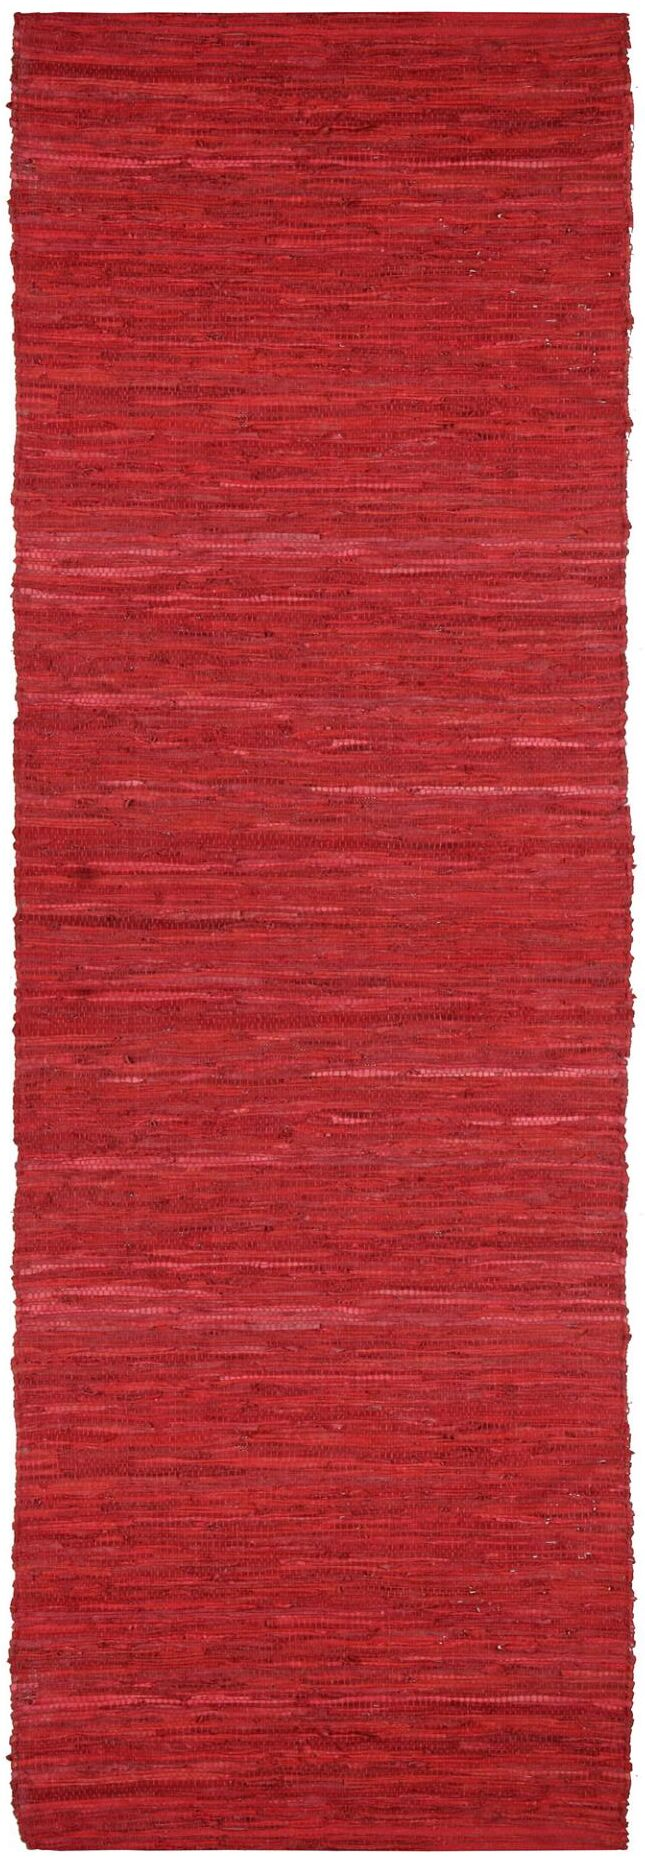 Sandford Chindi Hand Woven Cotton Red Area Rug Rug Size: Runner 2'5